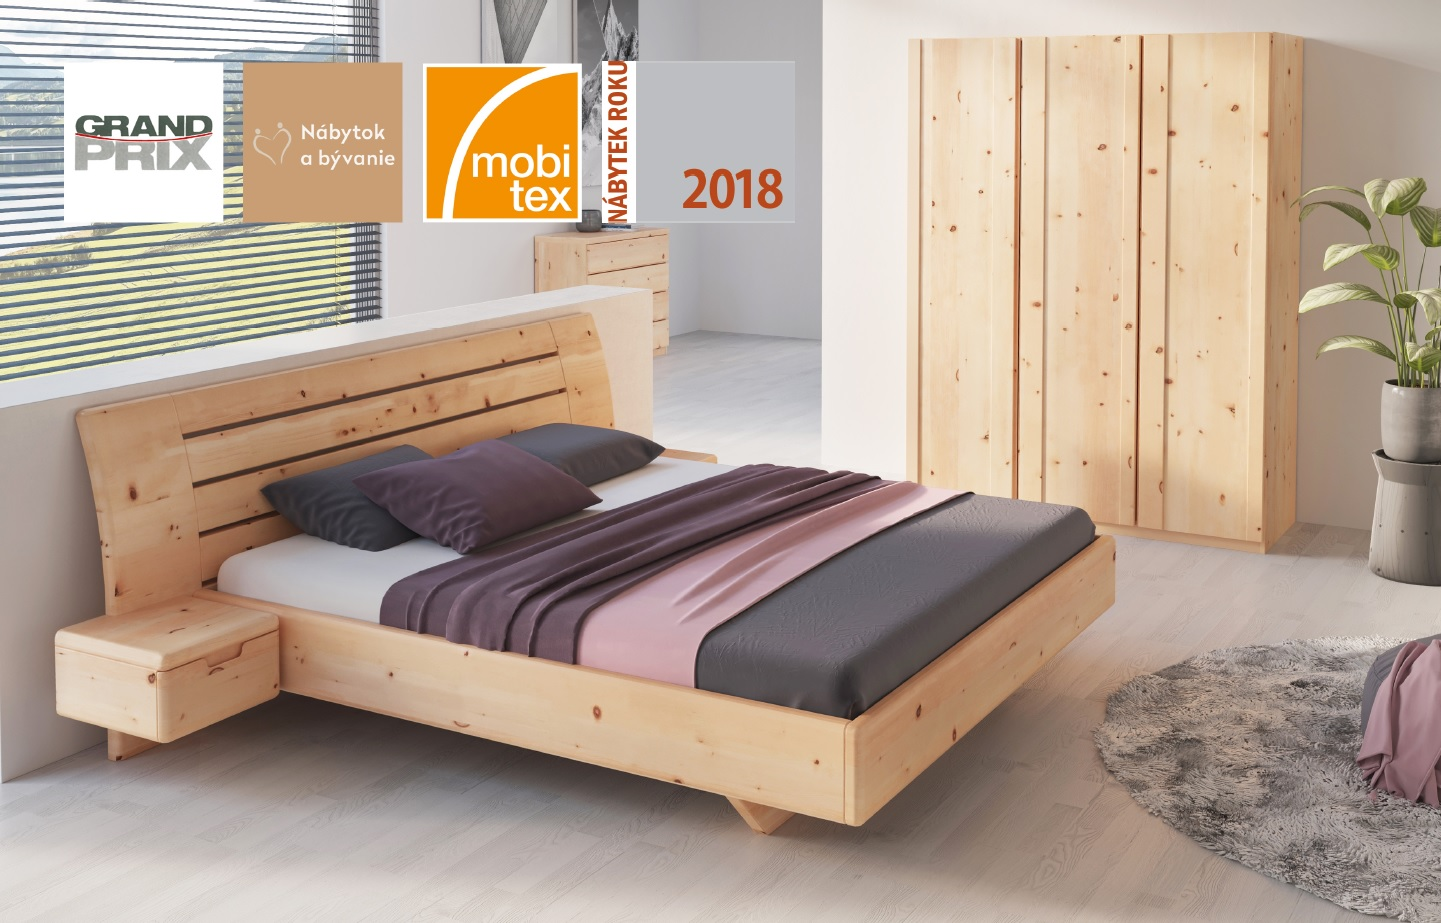 The BETINA bed collects another award!